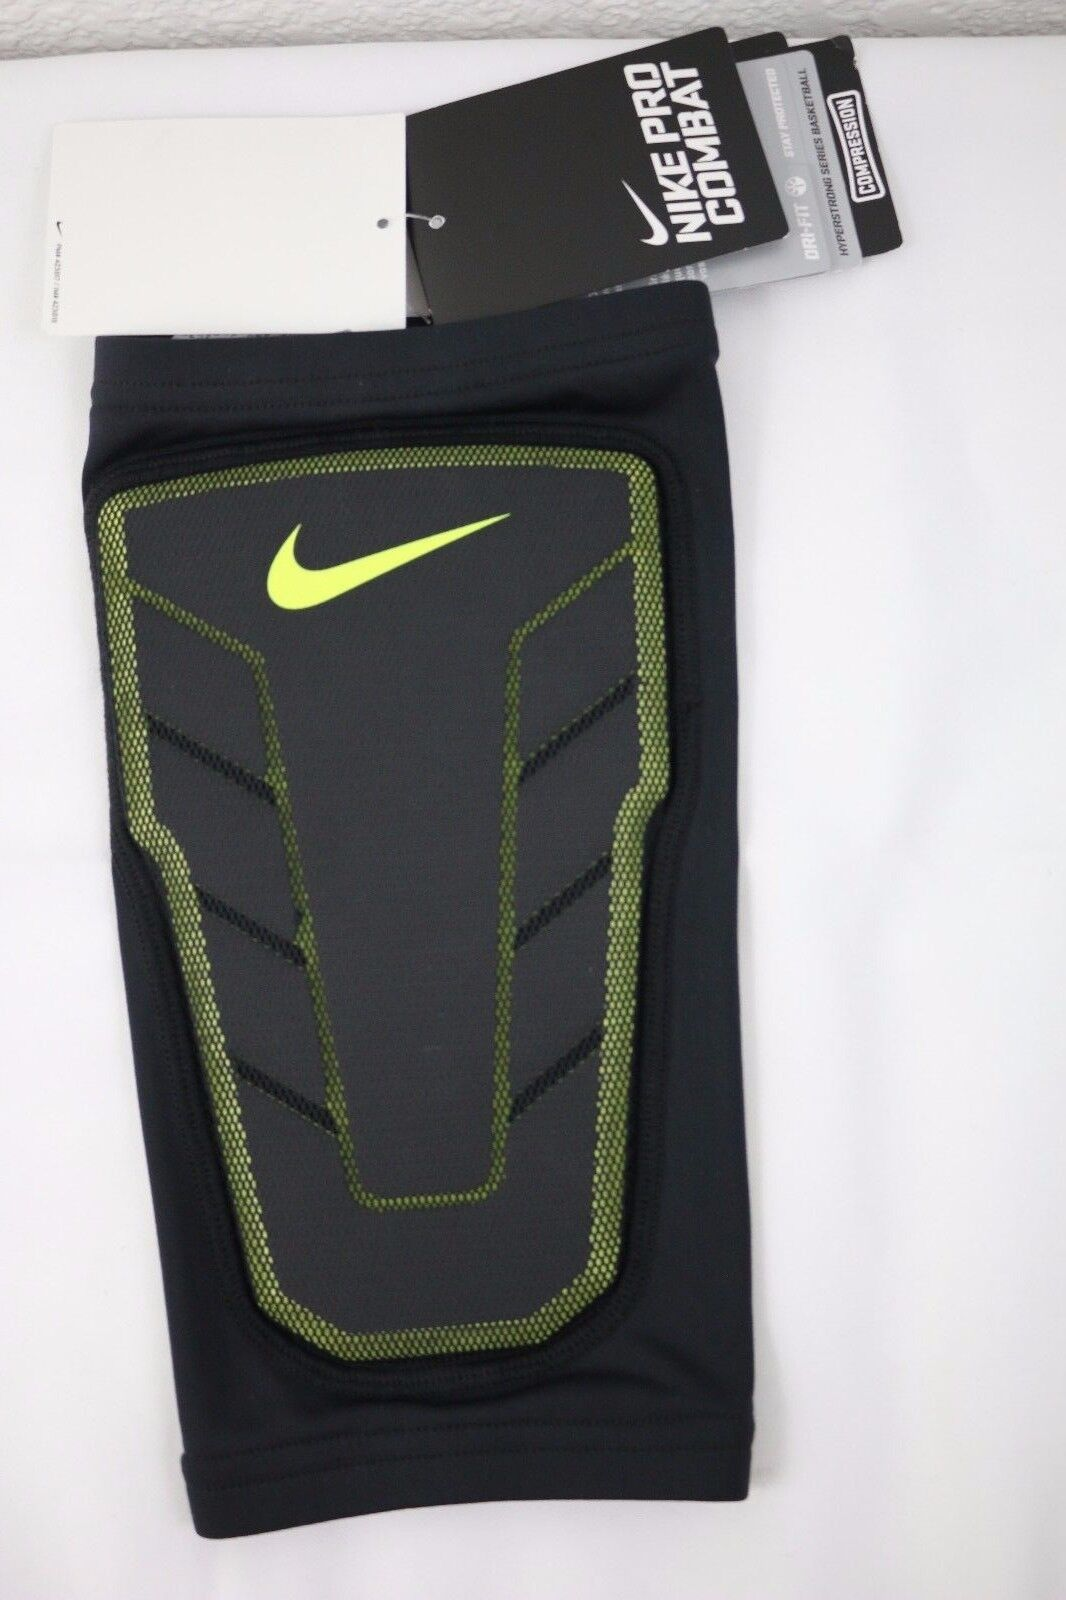 334e5acef7 ... UPC 884497079158 product image for Nike Pro Combat Hyperstrong  Compression Basketball Padded Shin Sleeve Sz Xl